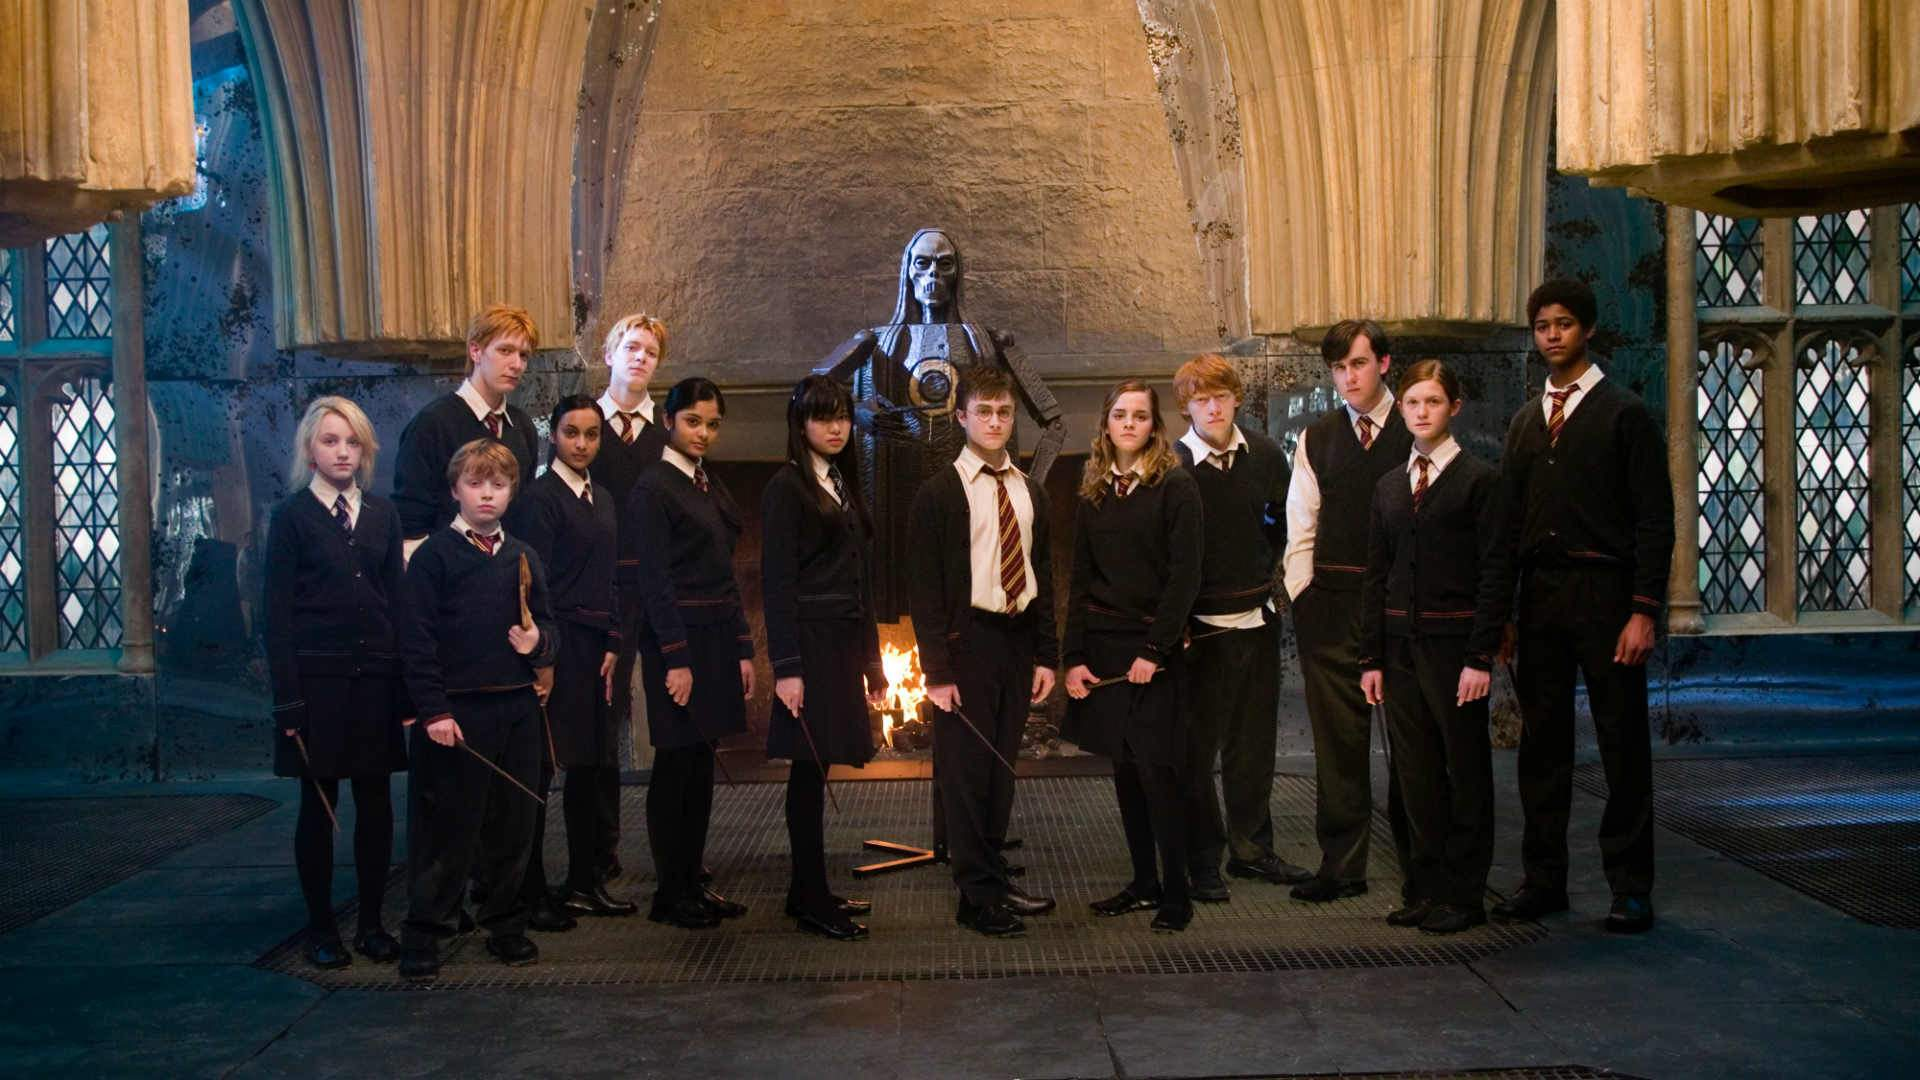 'Harry Potter and the Order of the Phoenix' Live in Concert with the QSO